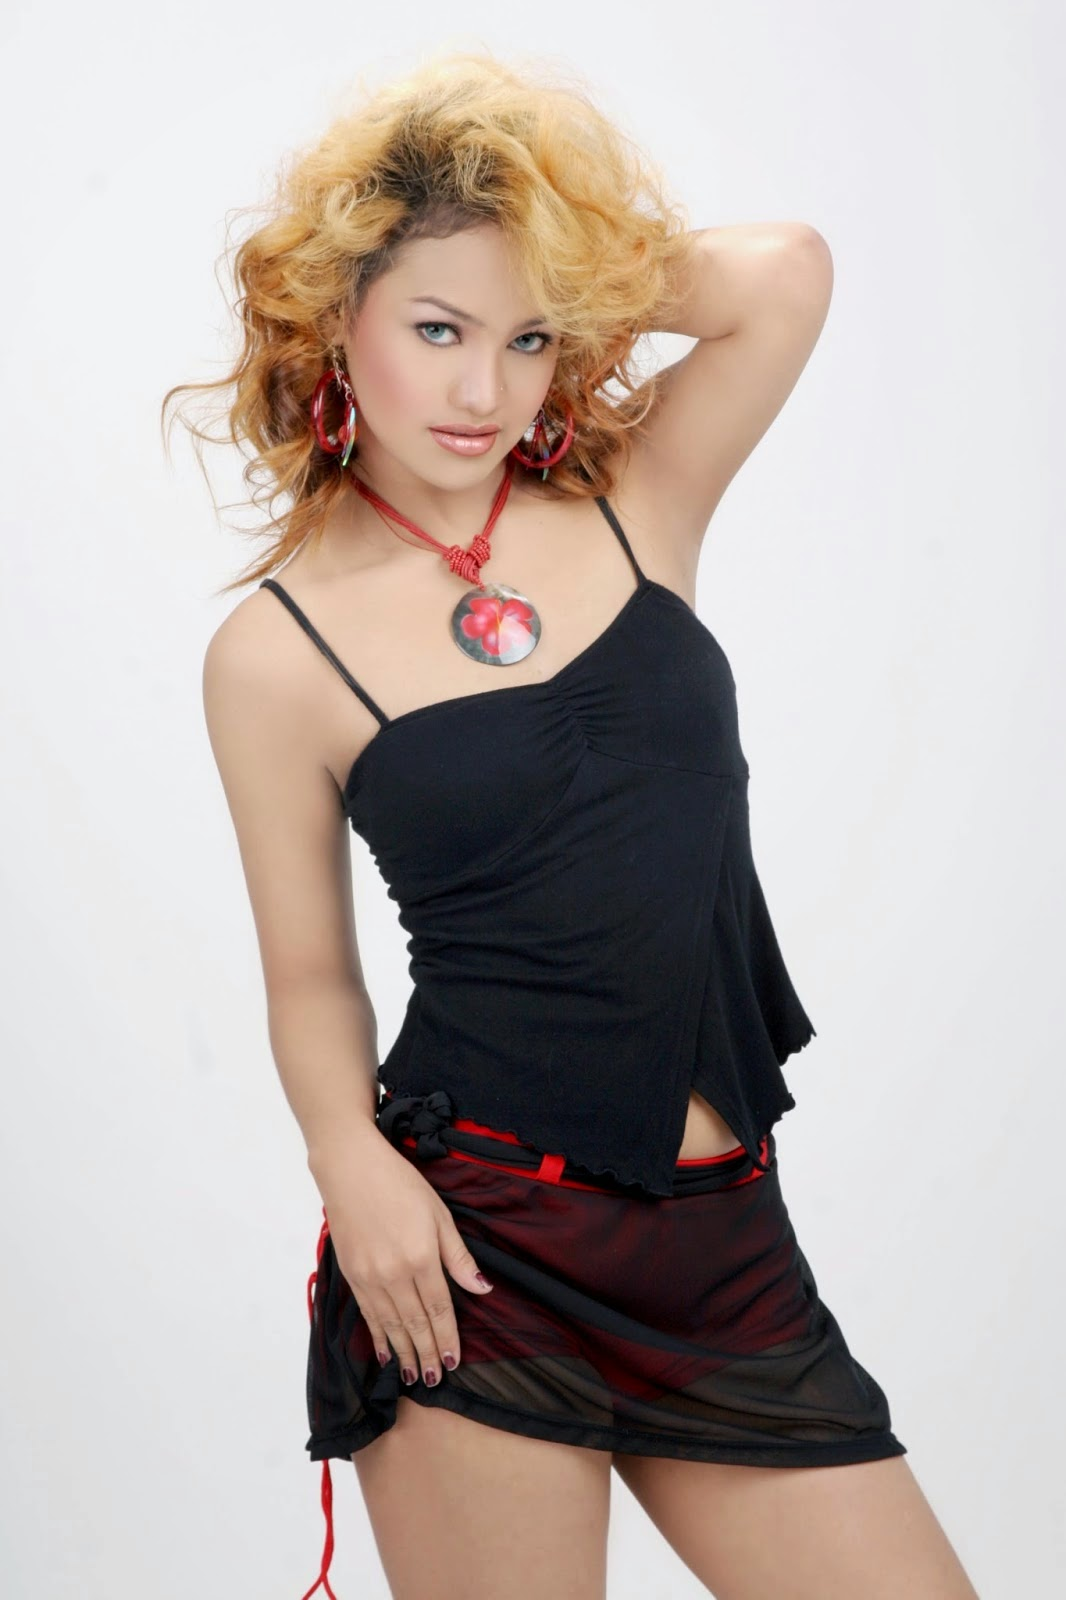 Indonesian dangdut singer behind the scene - 2 9